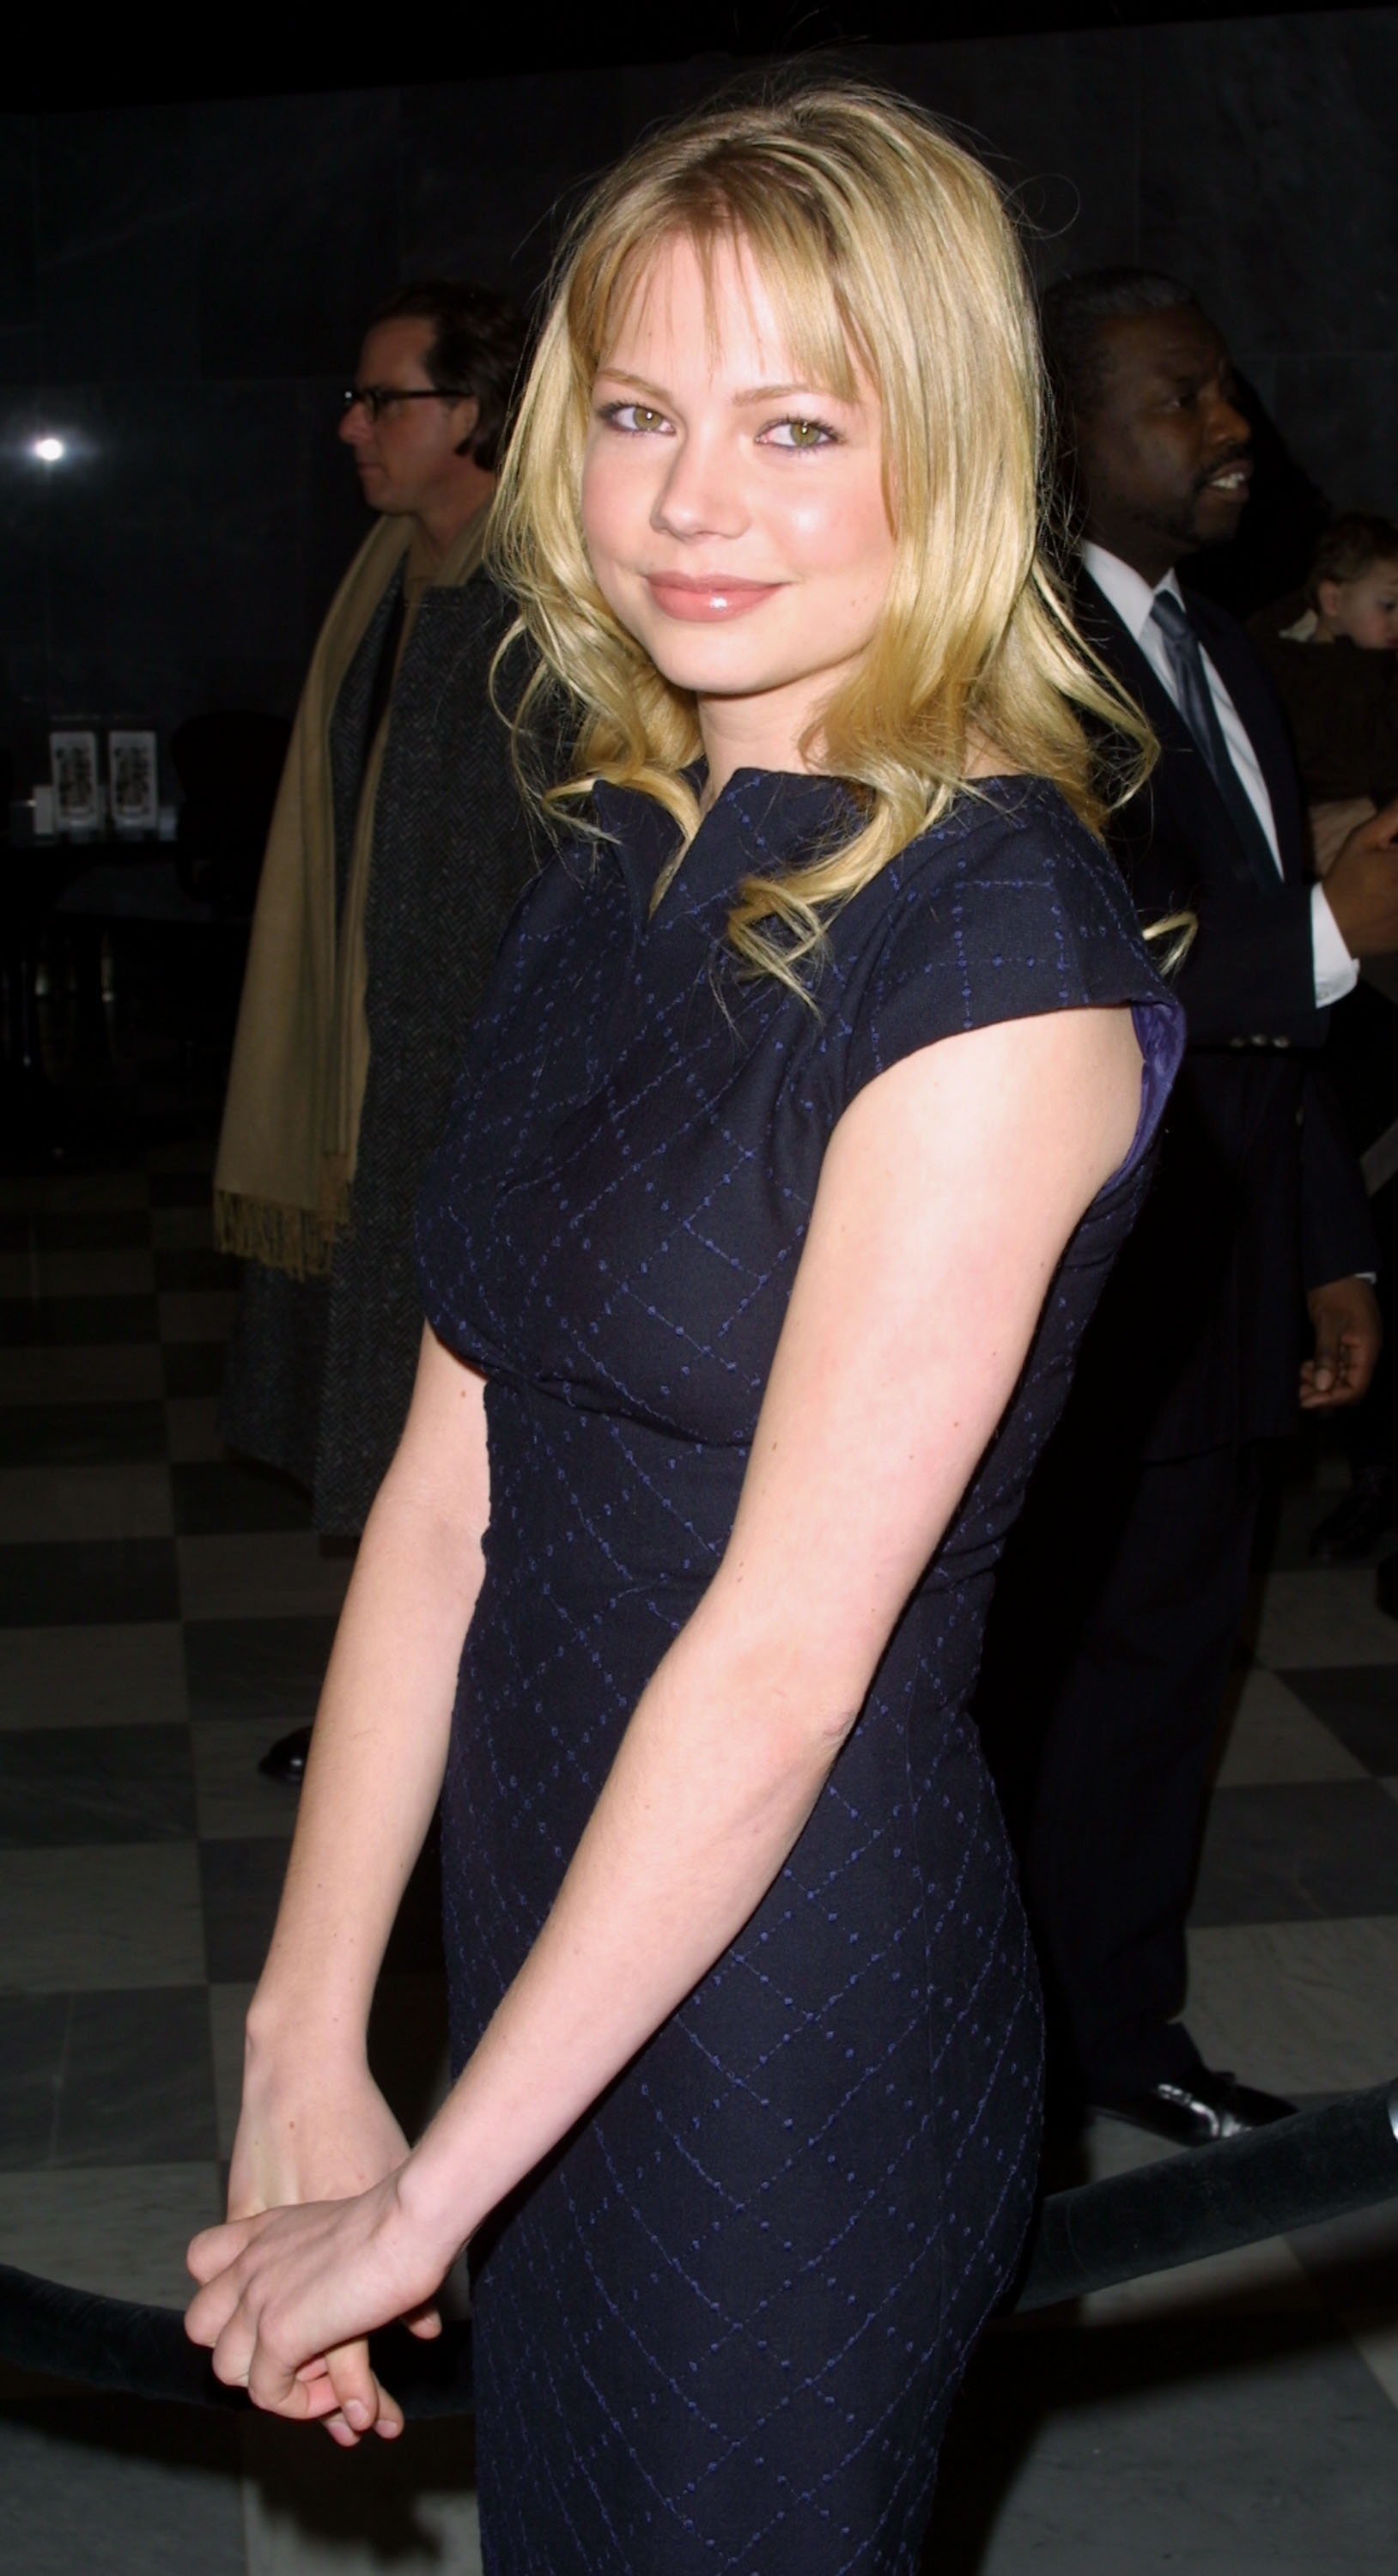 <p>Michelle Williams</p> <p>Oscar Nominee for Actress in a Supporting Role</p> <p><em>Manchester By The Sea</em></p>